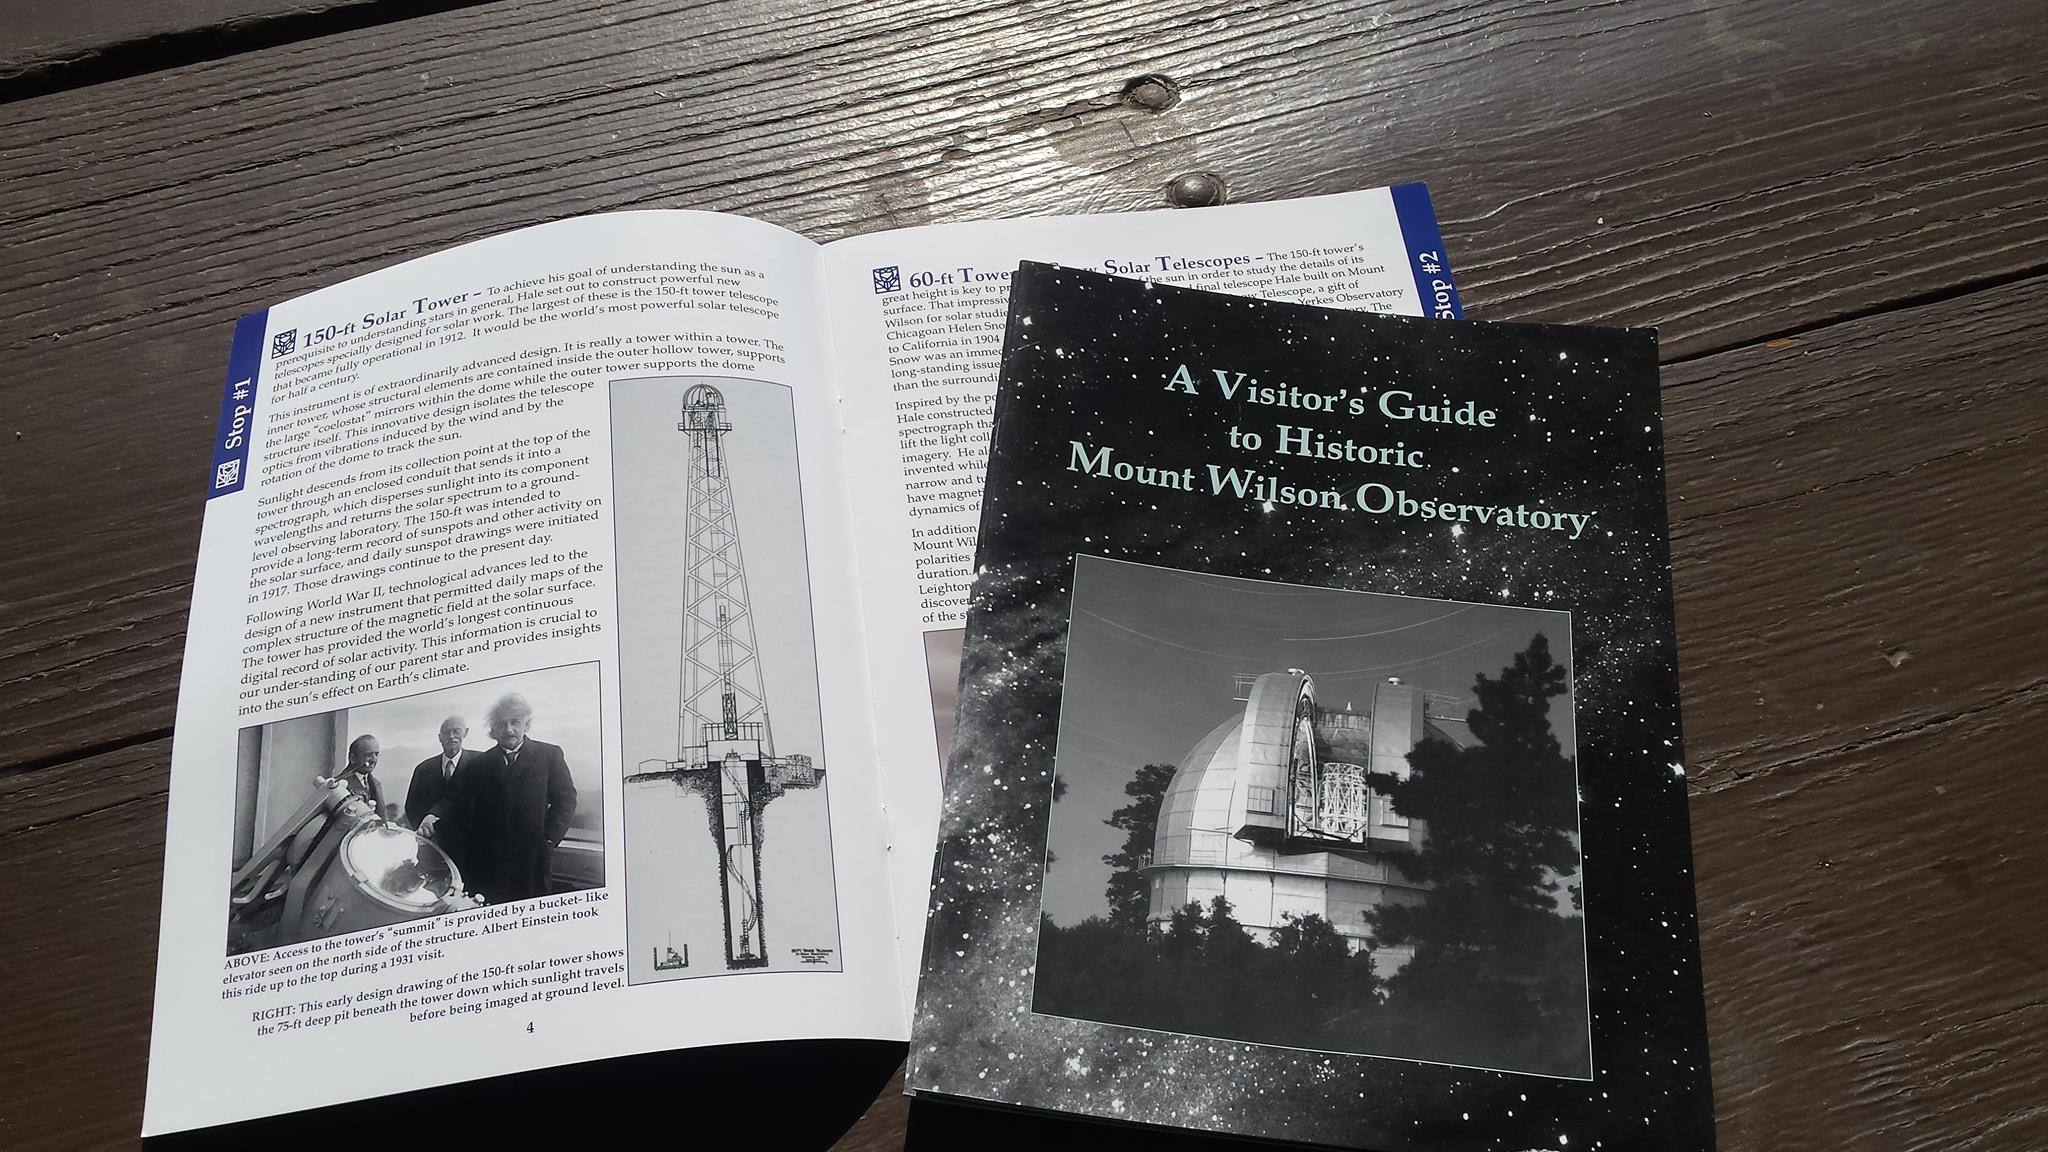 Mount Wilson Observatory Visitor's Guide